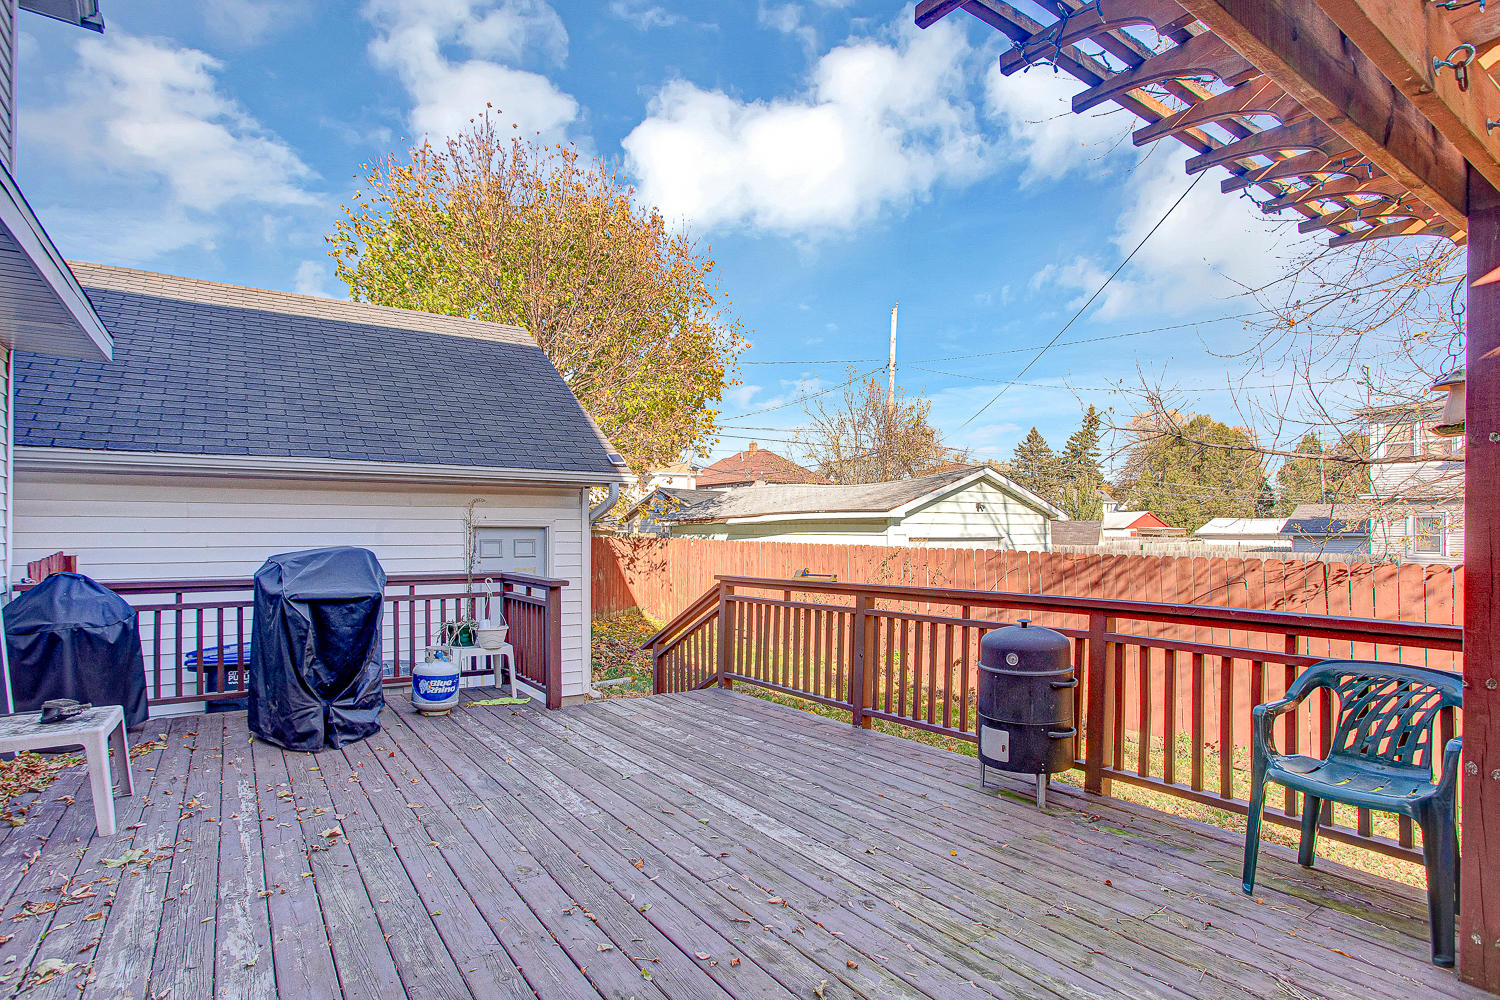 1503 16th St, Sheboygan, Wisconsin 53081, 3 Bedrooms Bedrooms, 8 Rooms Rooms,1 BathroomBathrooms,Single-family,For Sale,16th St,1721987